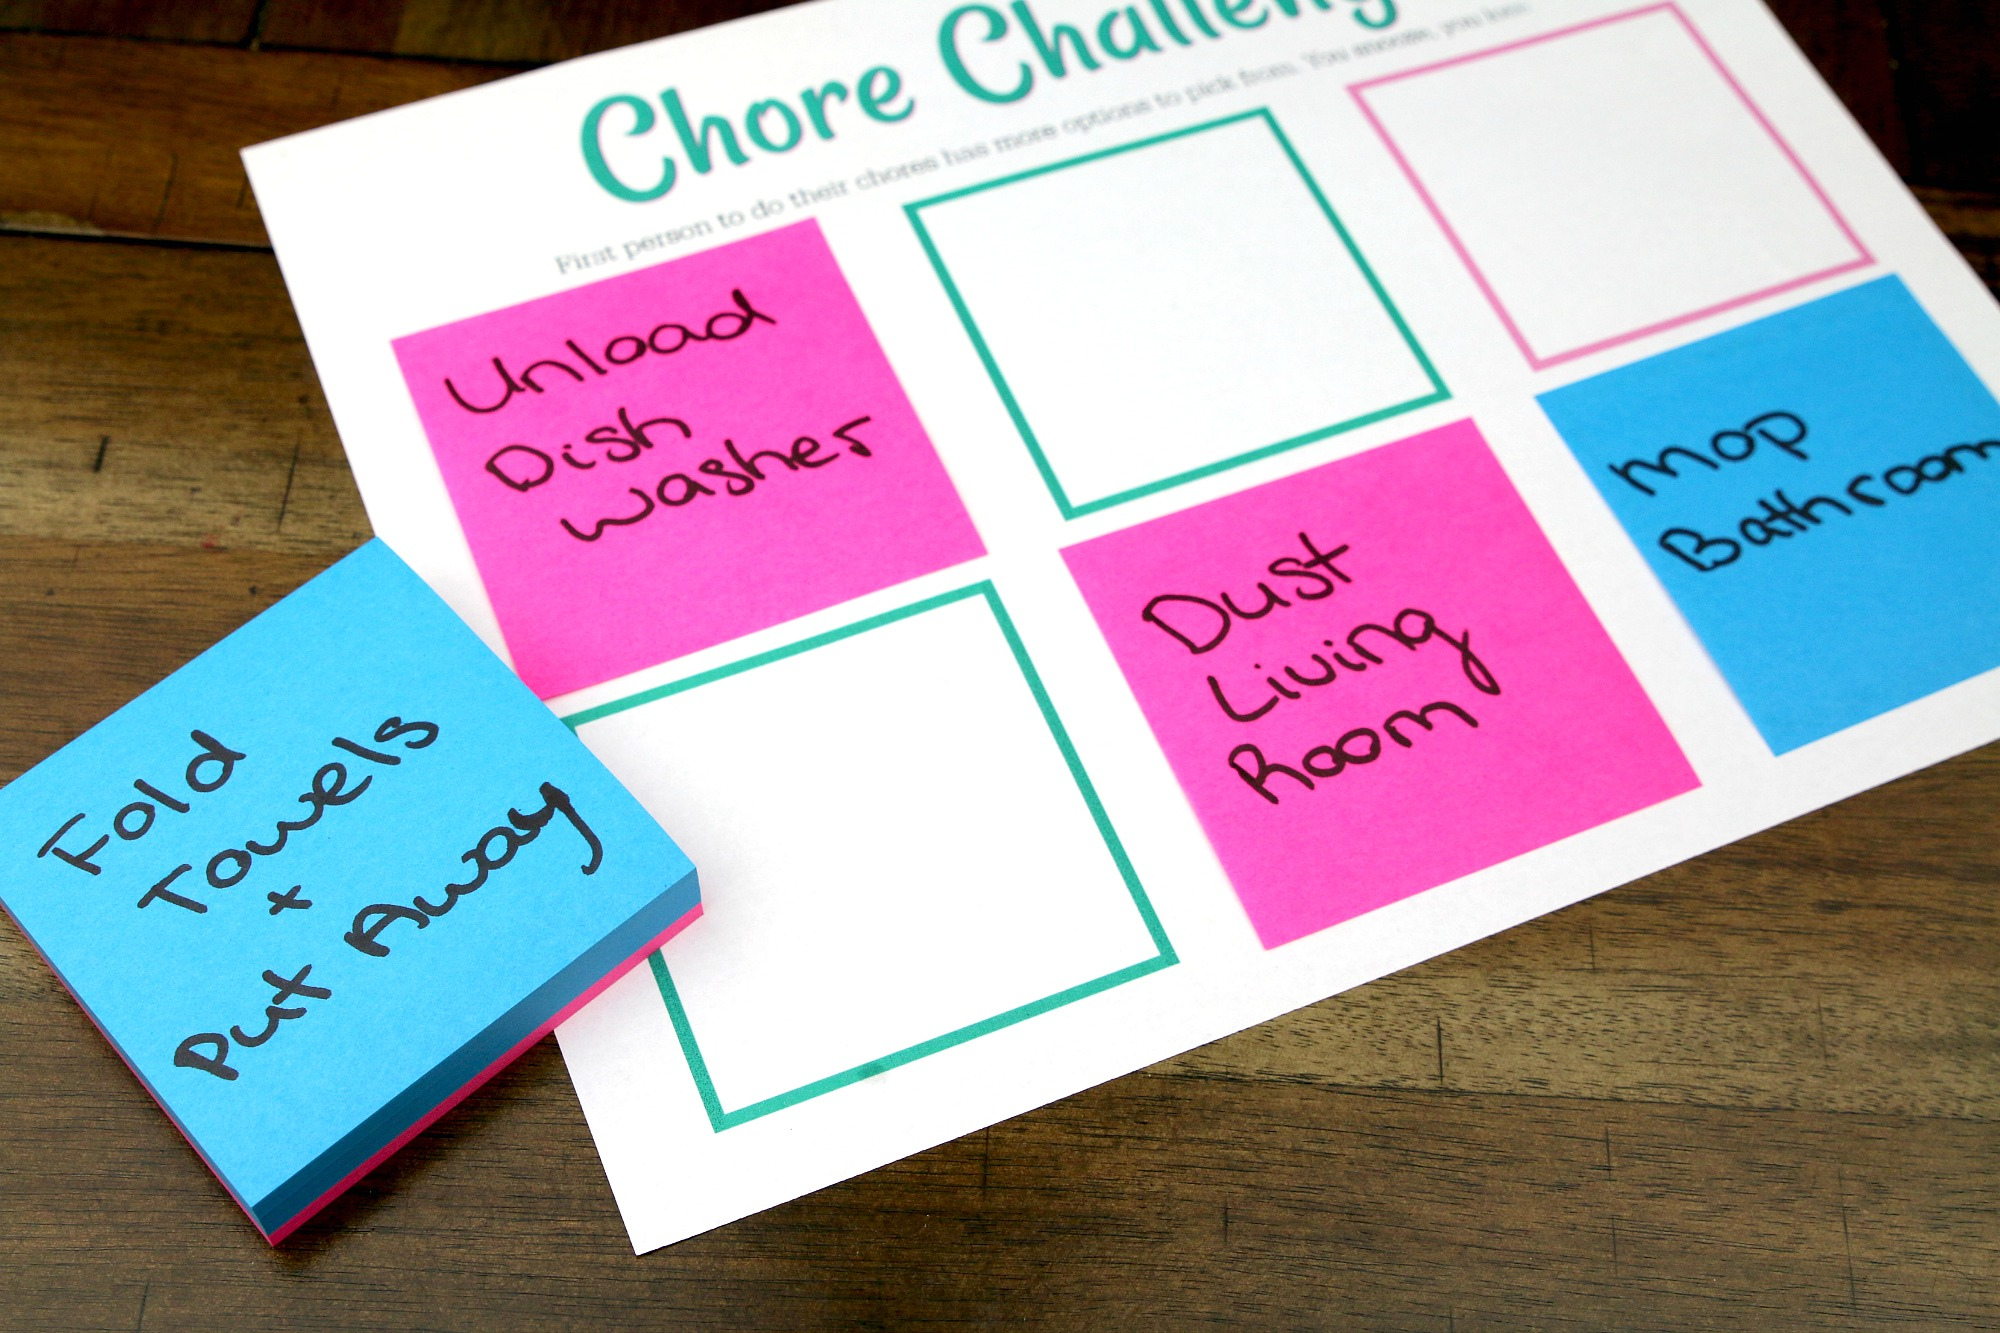 add Post-it Notes to chore chart